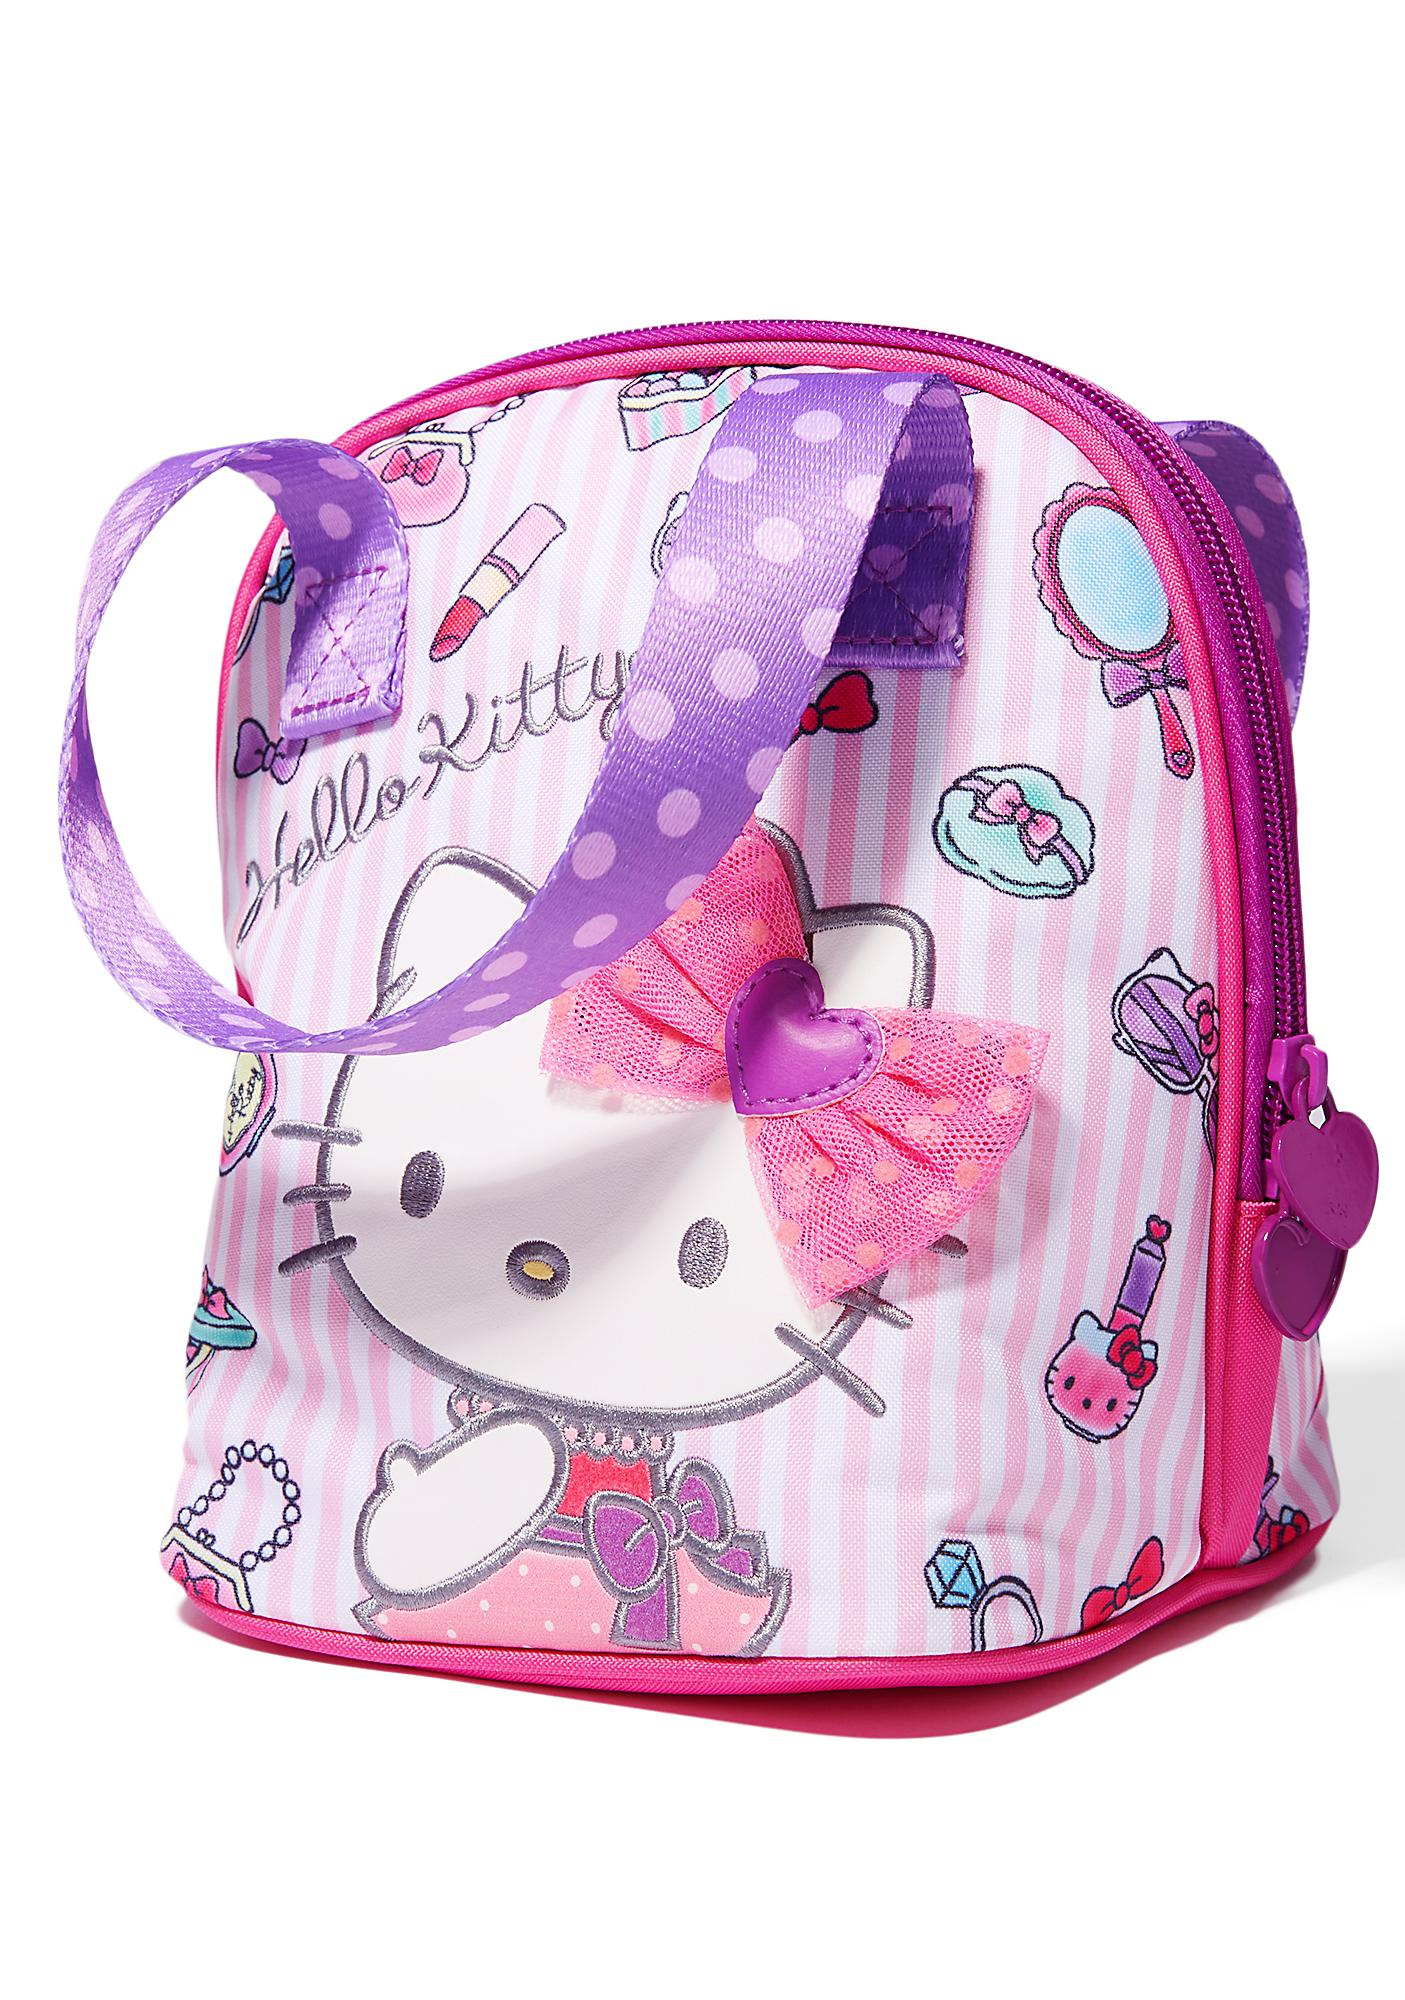 Sanrio Container Lunch Bag